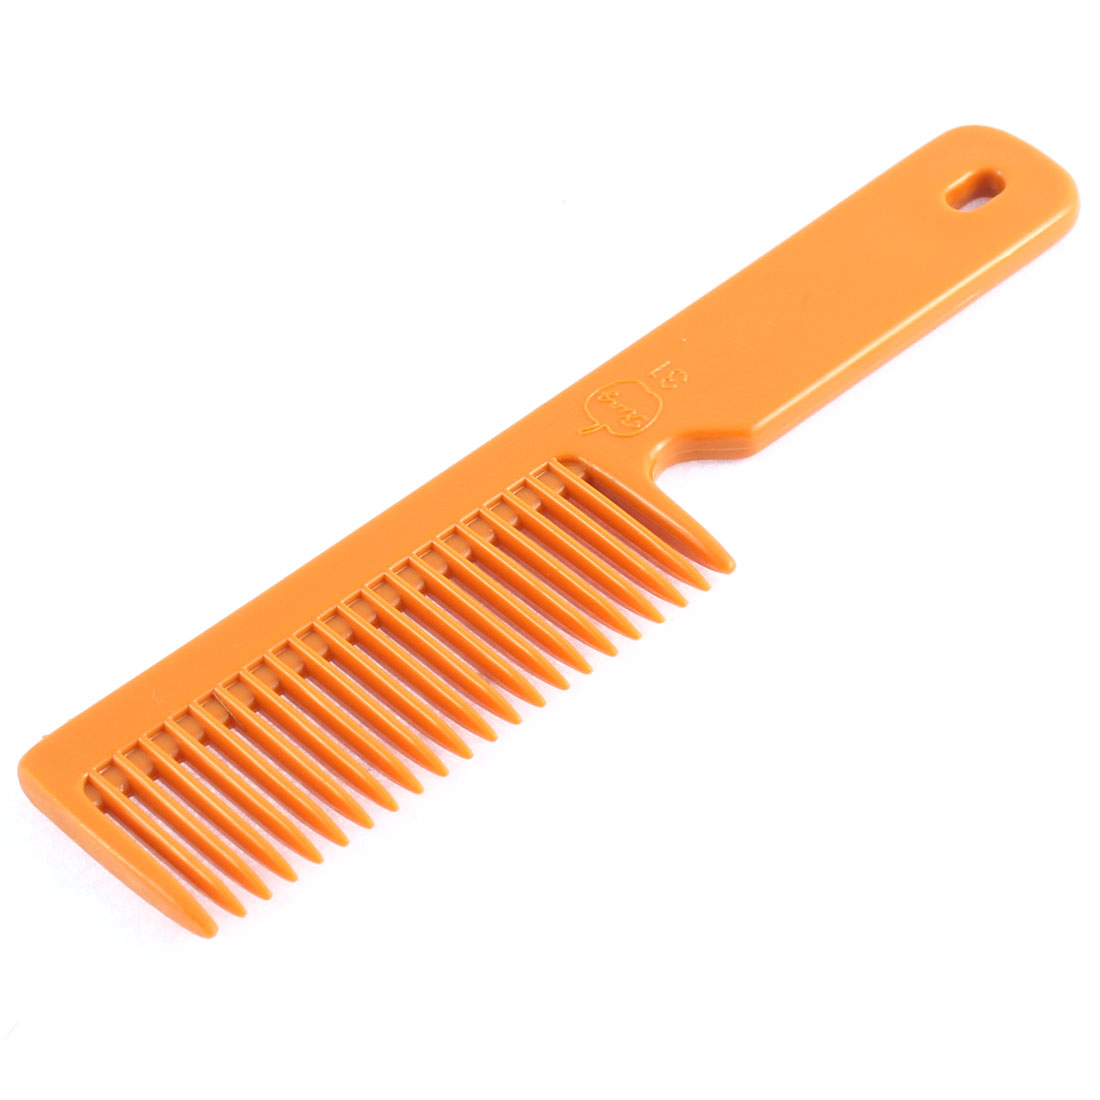 Salon Household Hairstyle Hairdressing Barbers Brown Plastic Comb 14cm Length